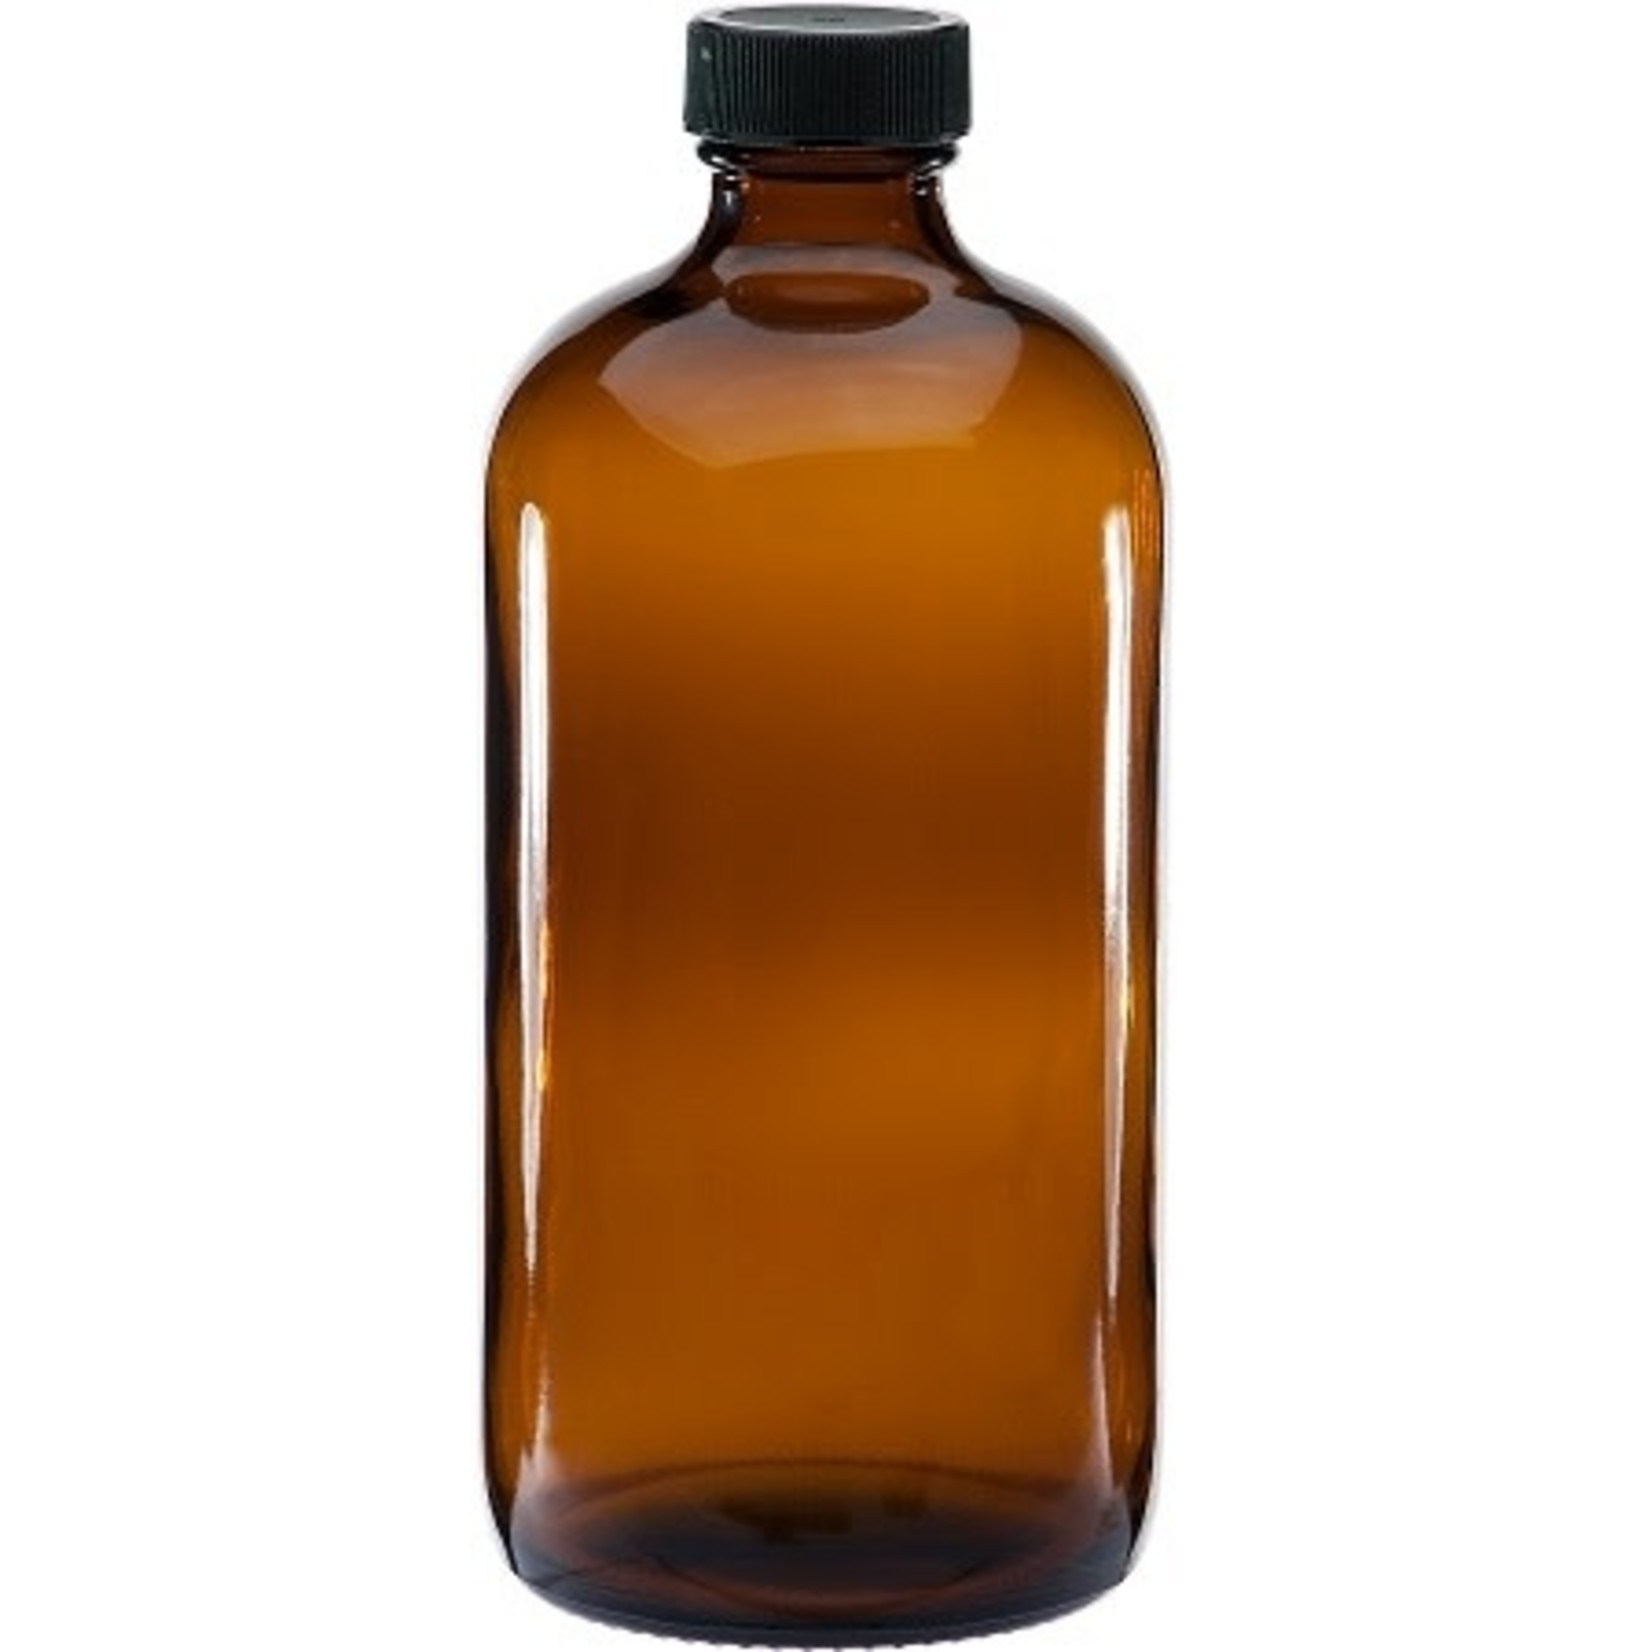 16oz Amber Glass Round Bottle Container